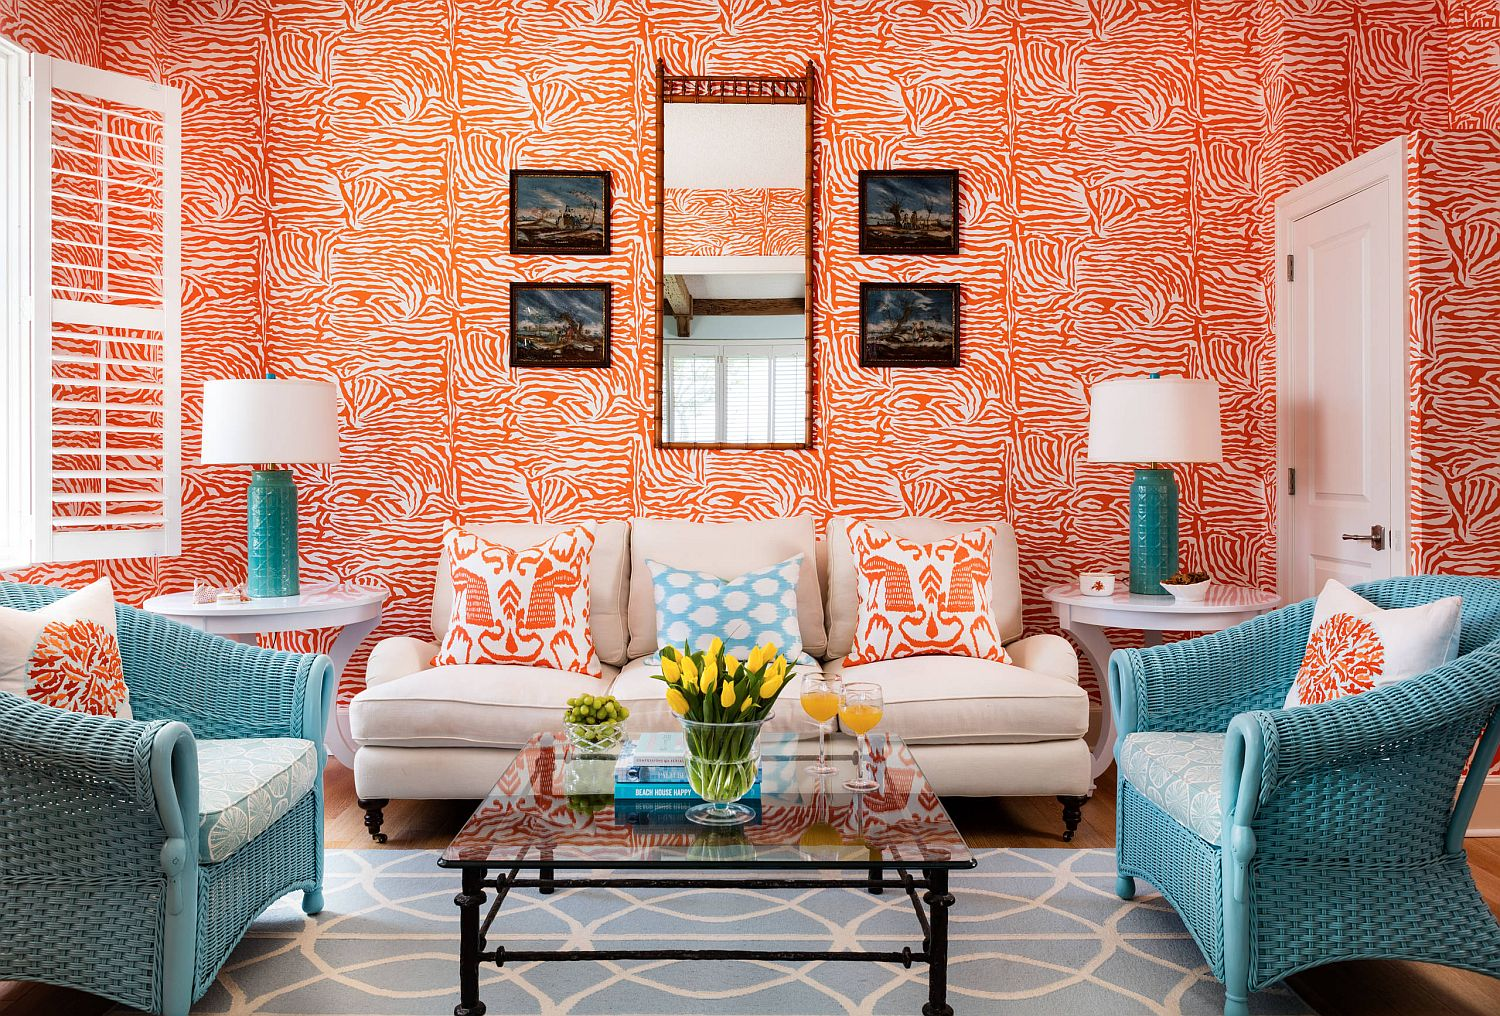 Awesome use of orange in the modest tropical living room